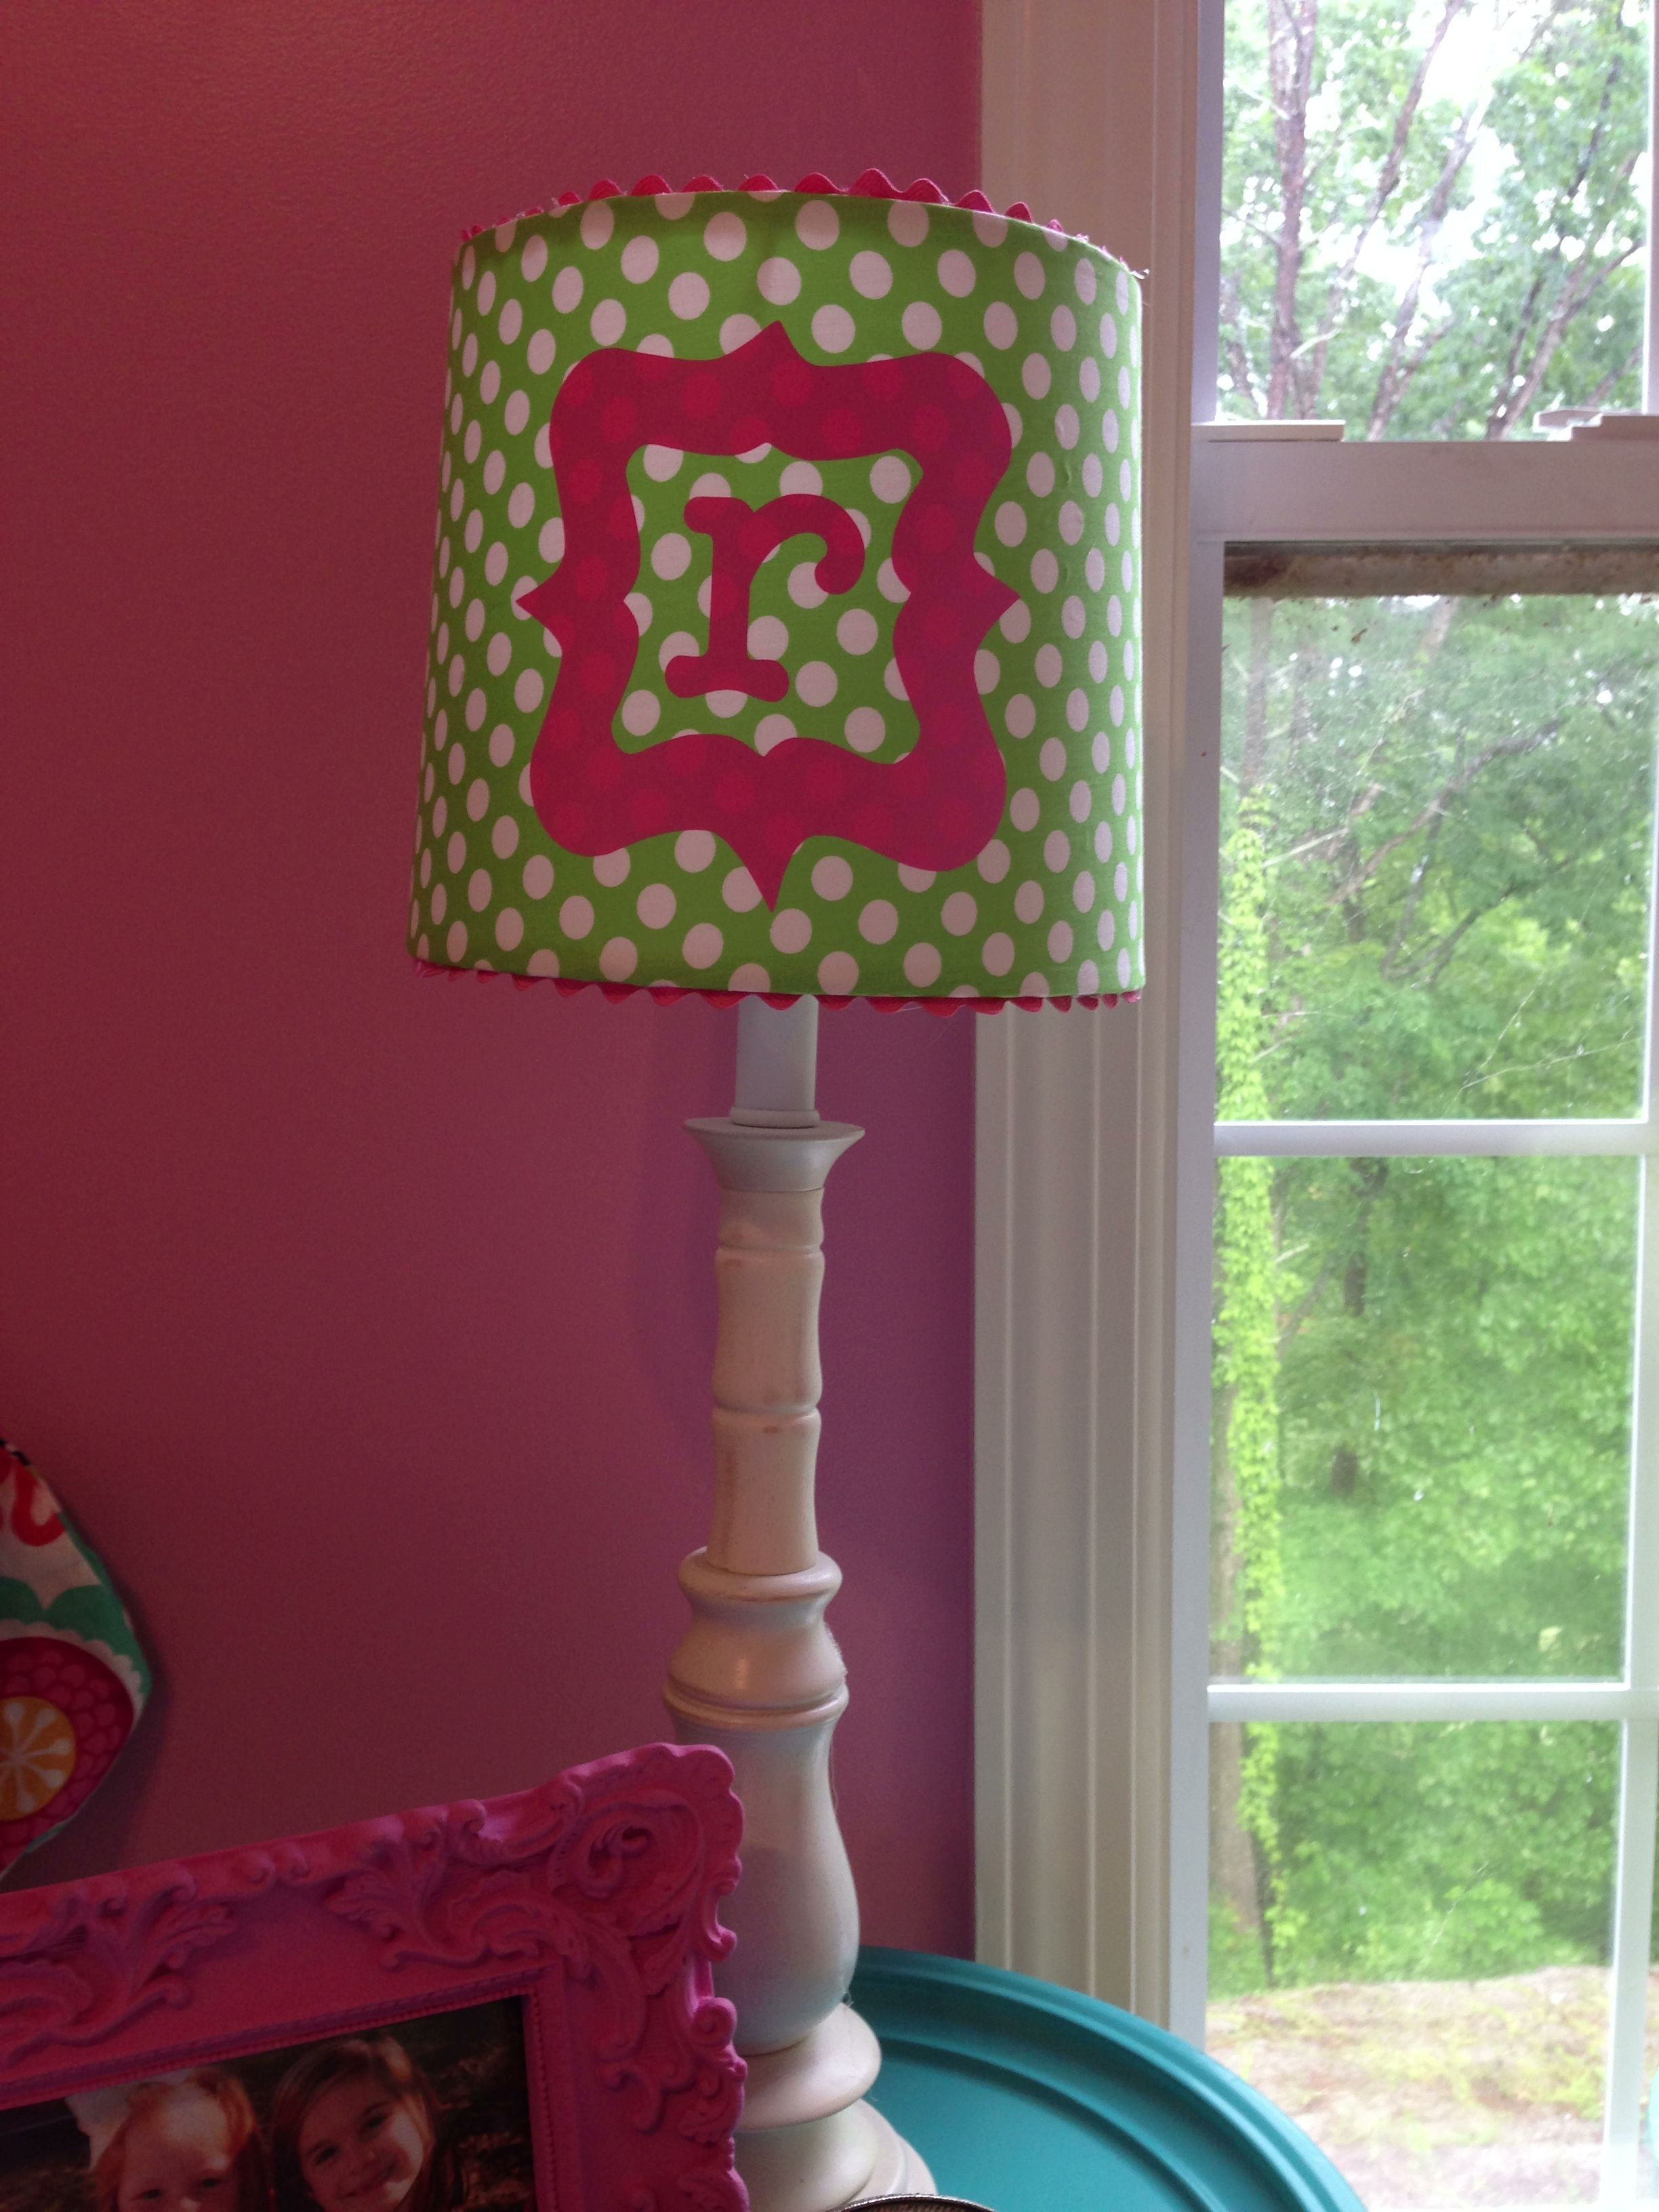 Hobby Lobby Lamp Shades Enchanting Self Adhesive Lamp Shade From Hobby Lobby With A Vinyl Design From Design Ideas